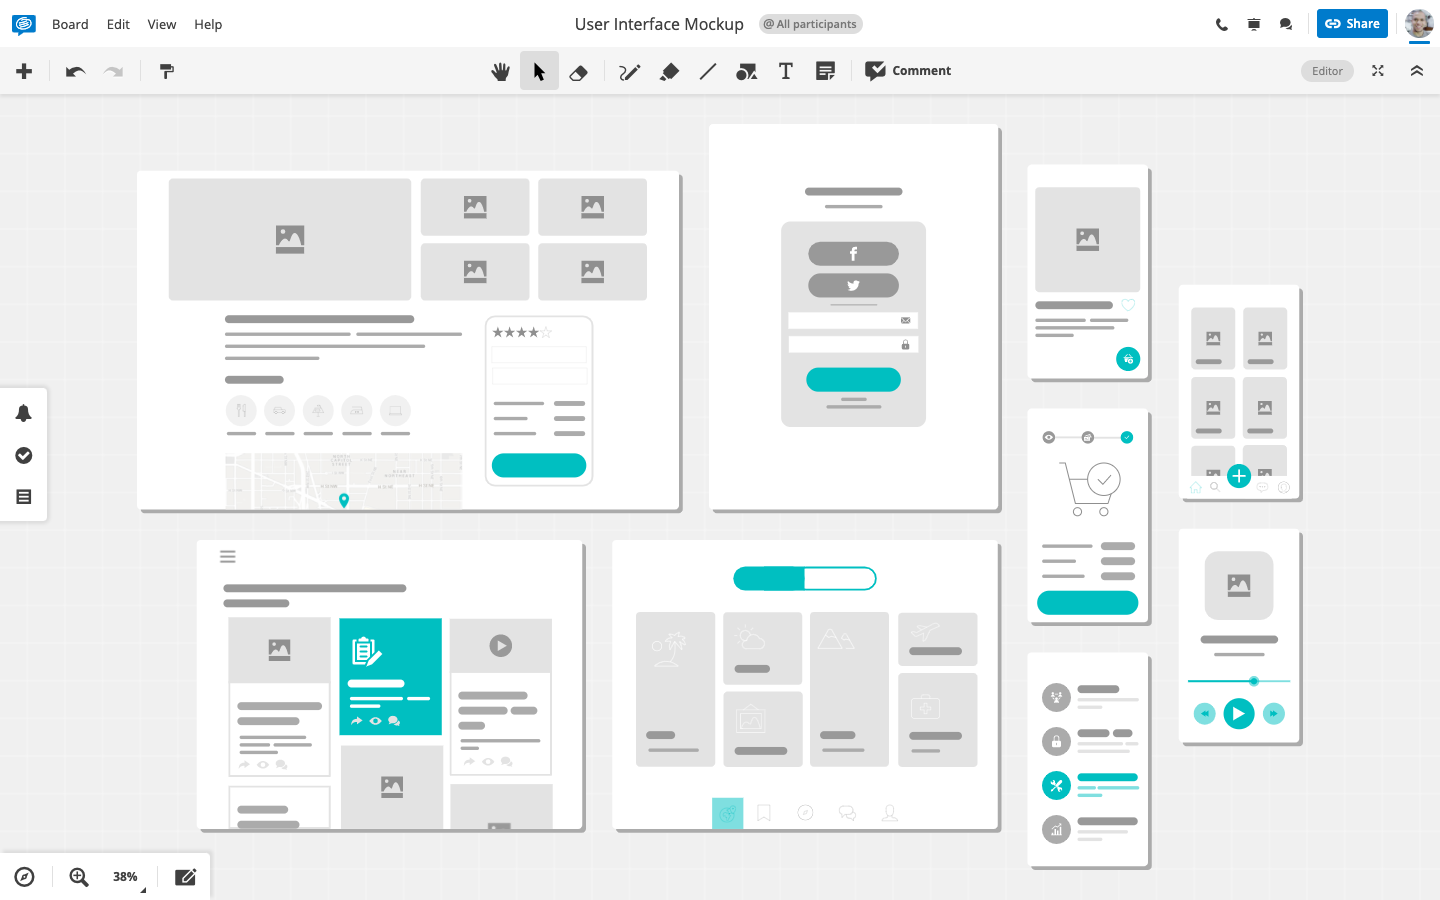 Conceptboard User Interface Mockup